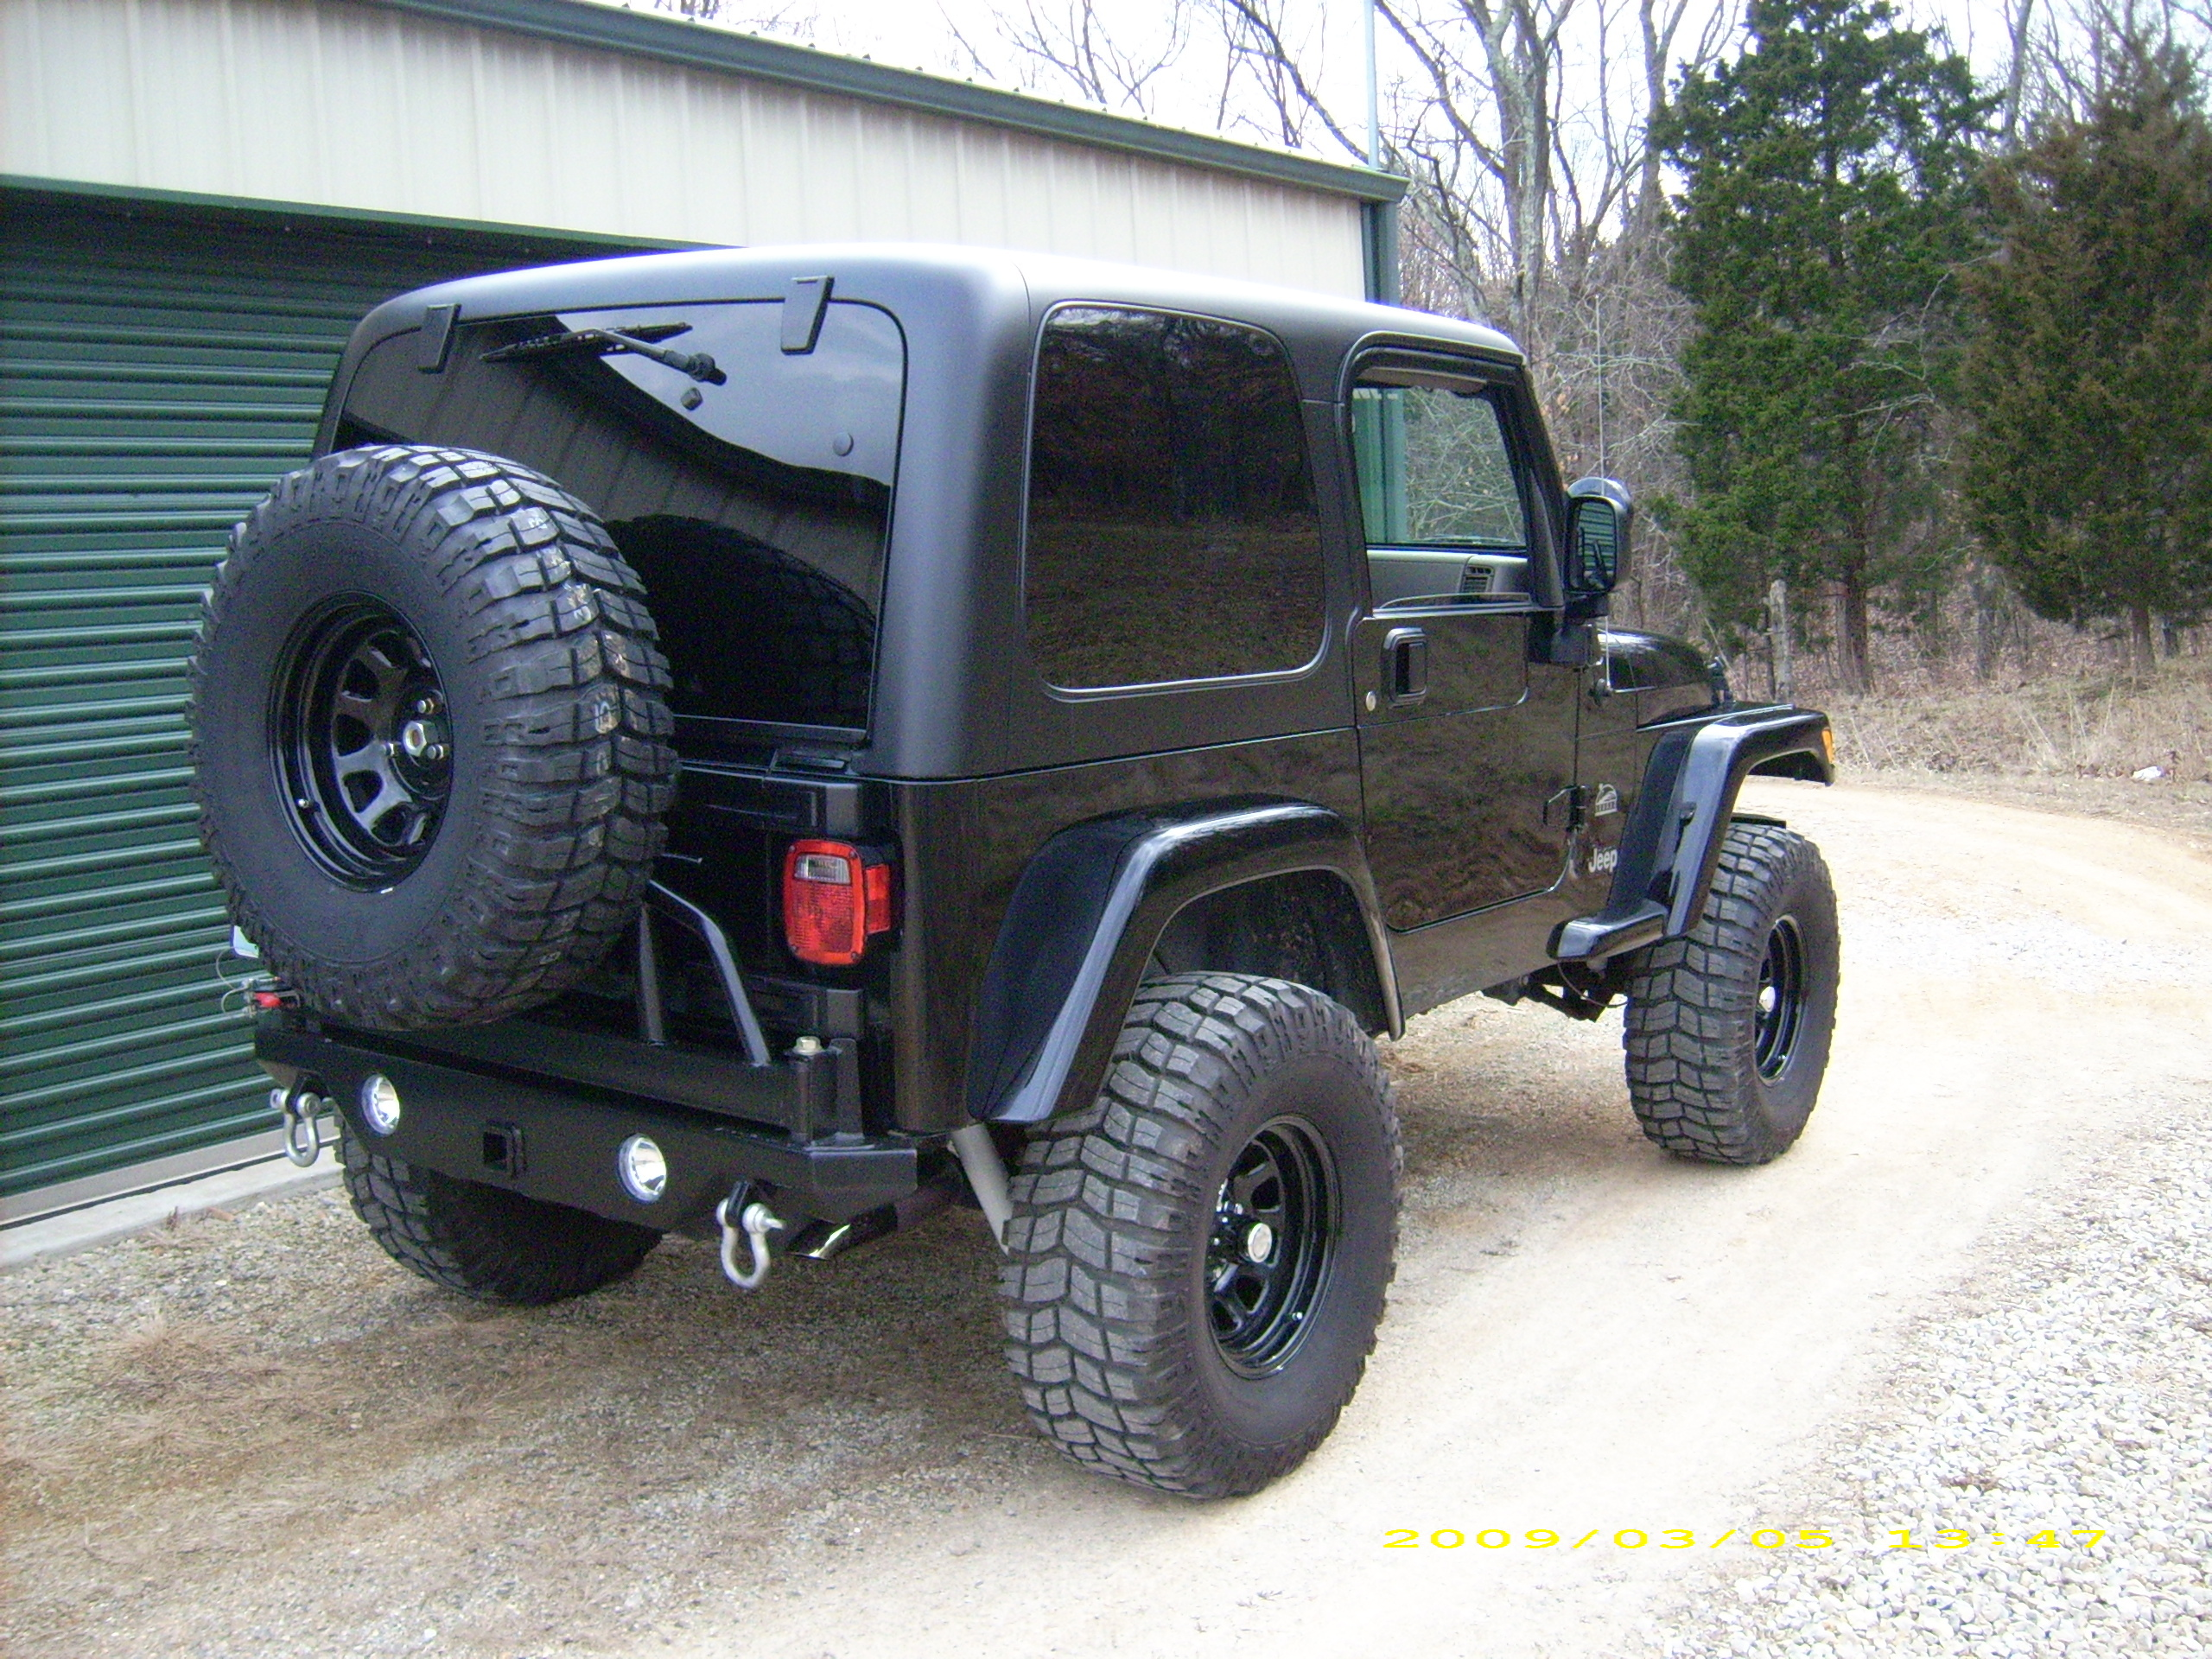 jeepasd 2004 jeep wrangler specs, photos, modification info at